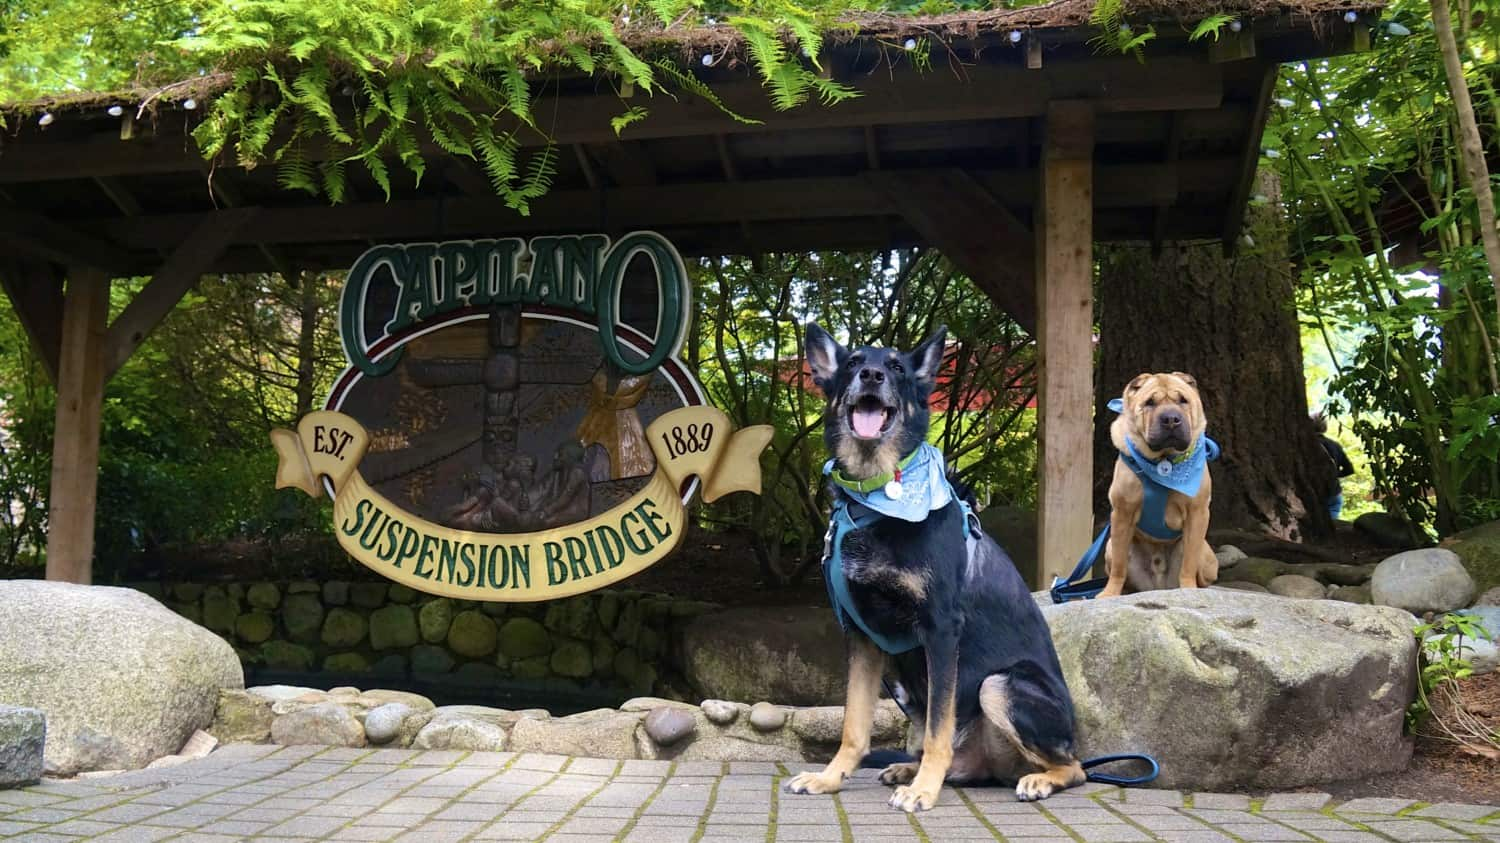 German Shepherd Dog and Shar-pei at the dog friendly Capilano Suspension Bridge in Vancouver, BC